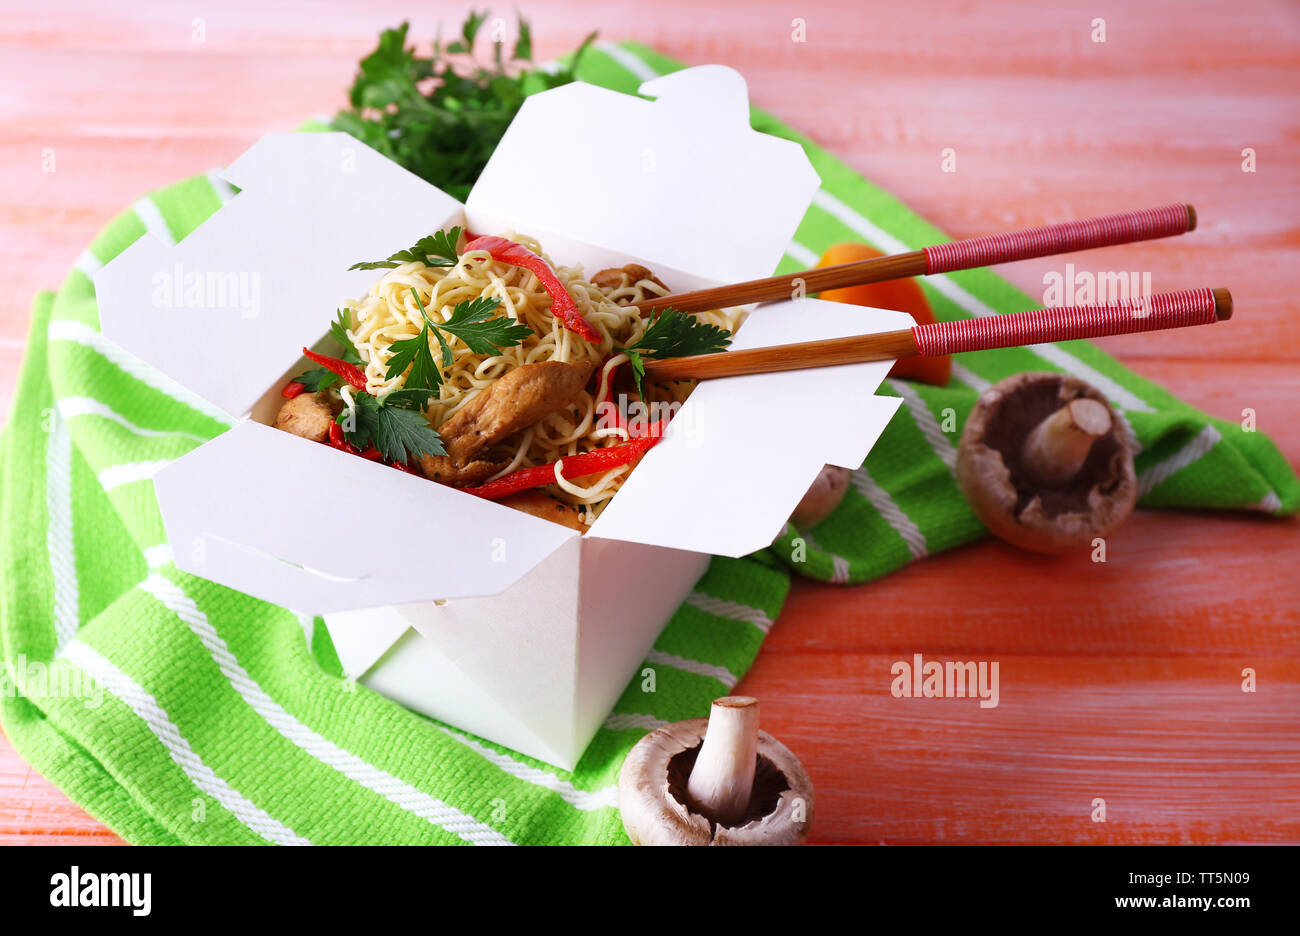 Chinese noodles and sticks in takeaway box on green napkin on pink background - Stock Image